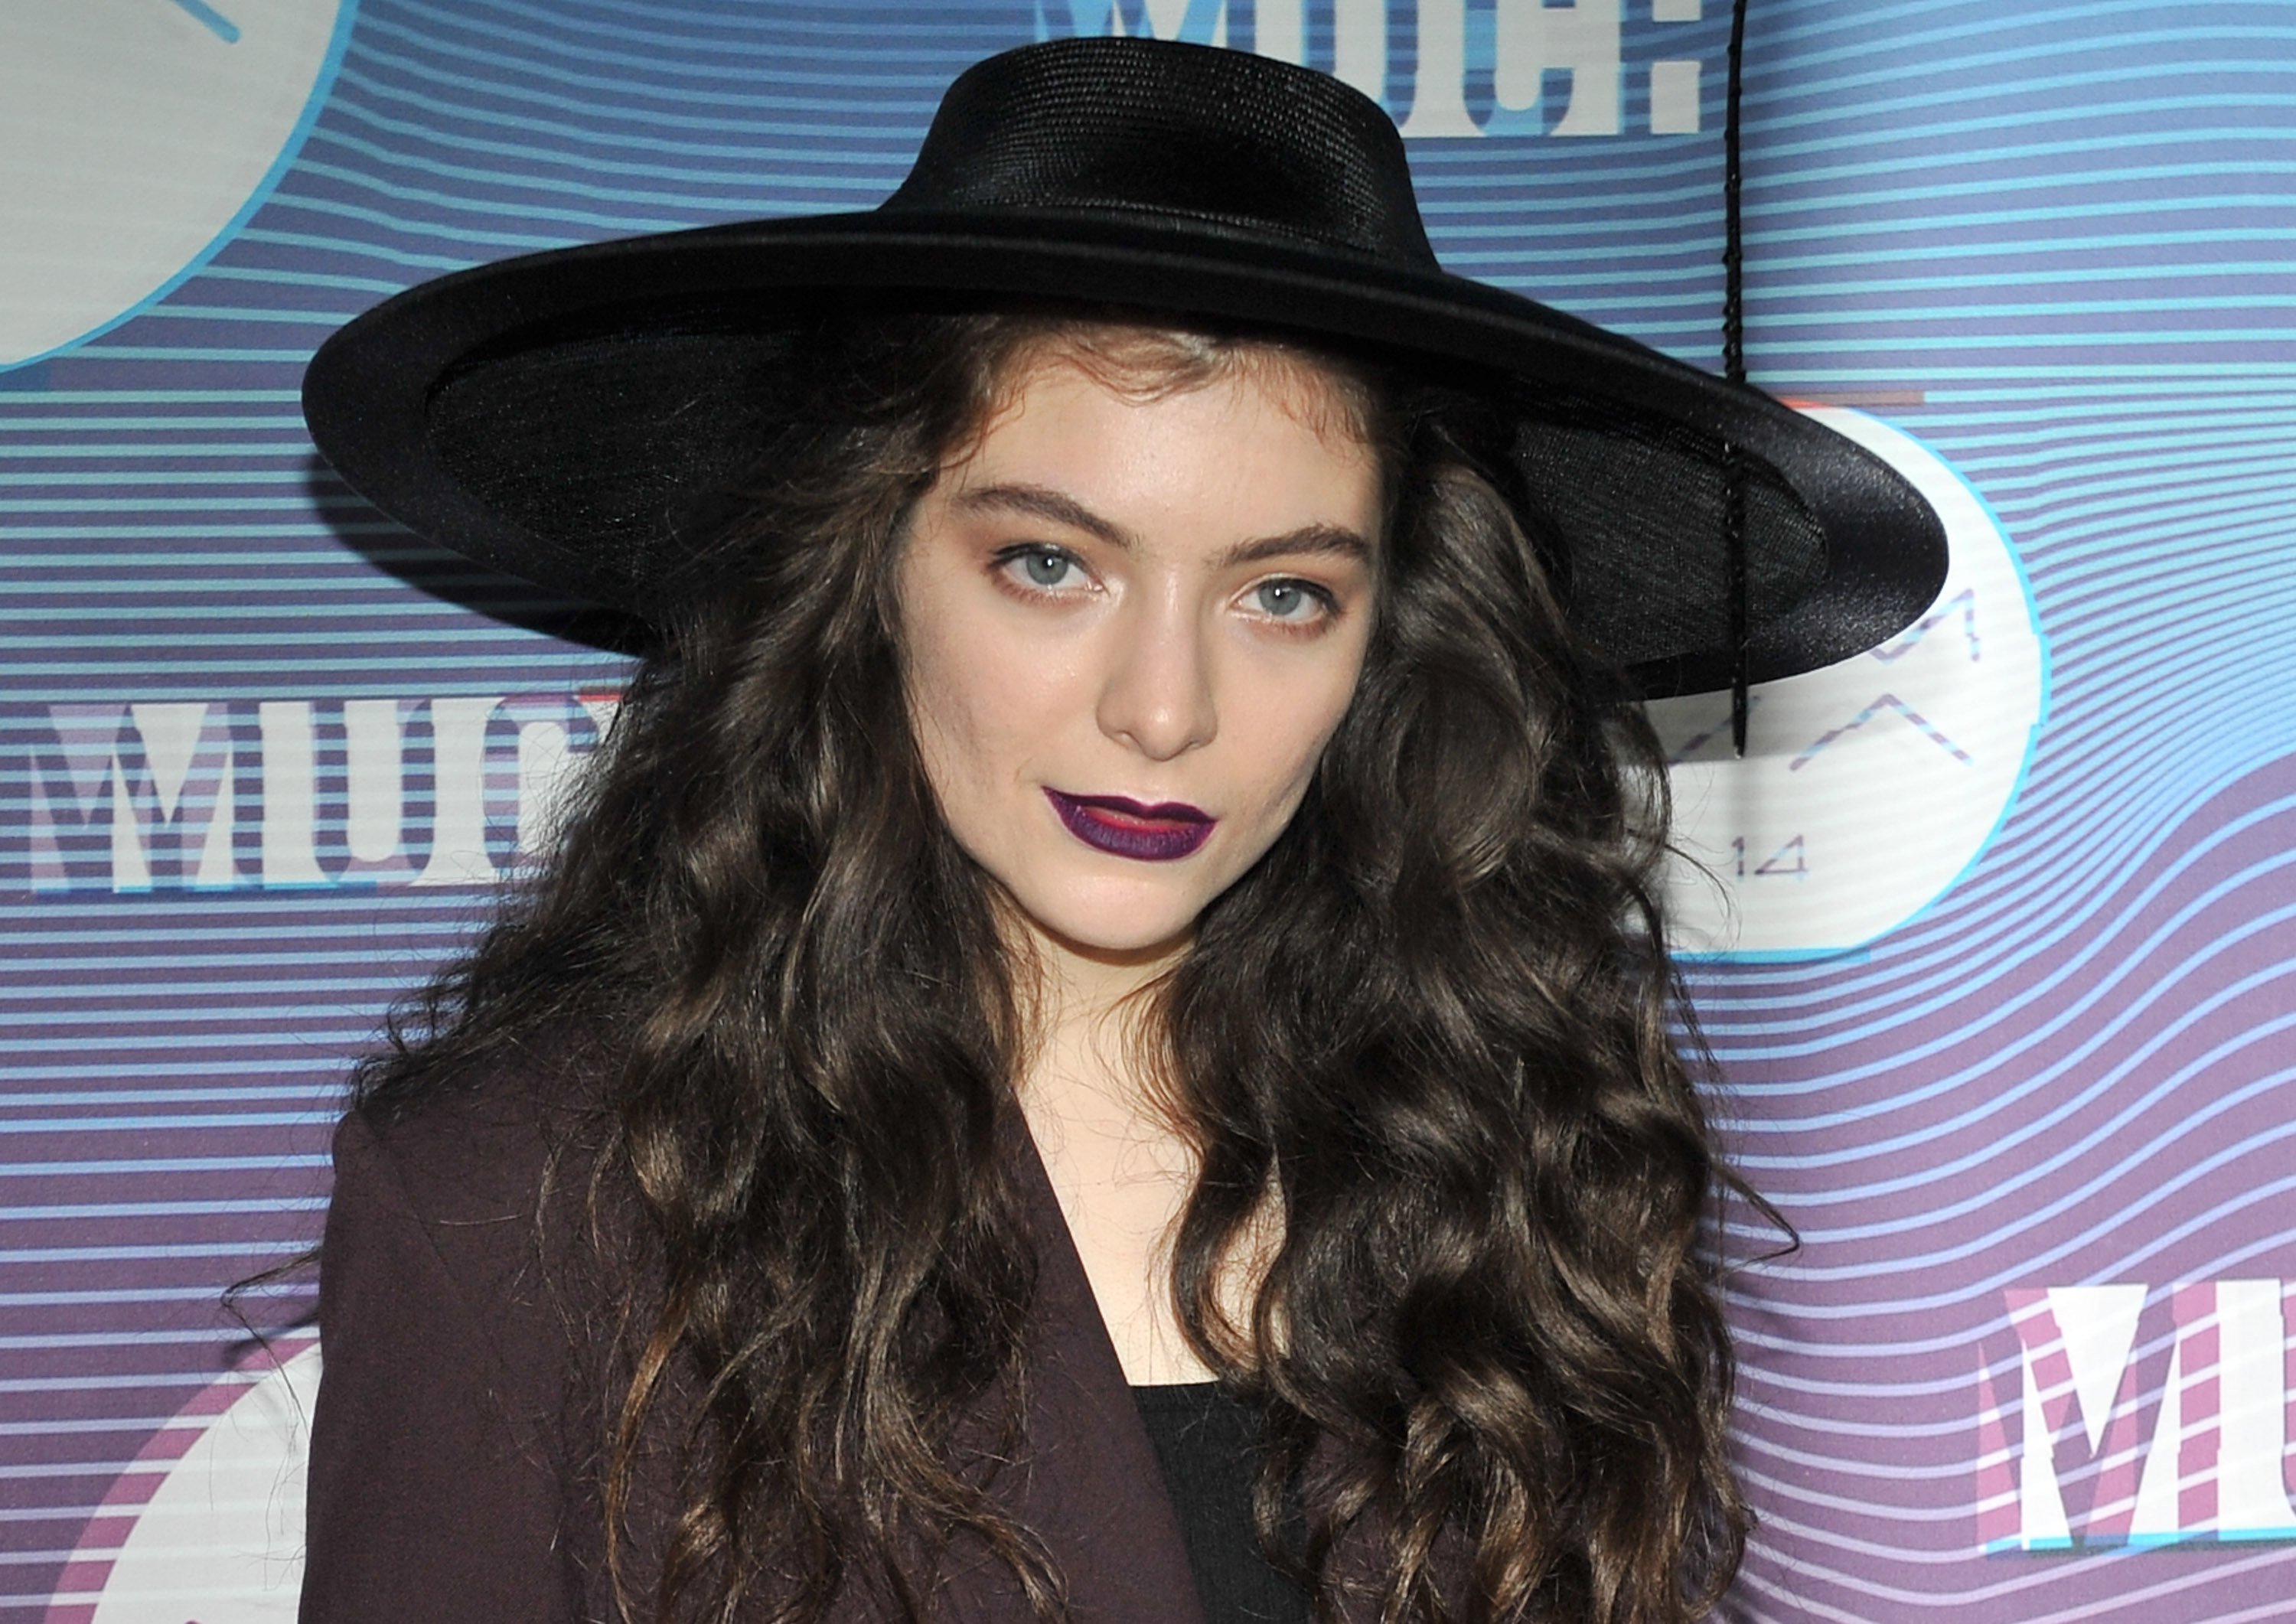 Singer-songwriter Lorde poses in the press room at the 2014 MuchMusic Video Awards at MuchMusic HQ